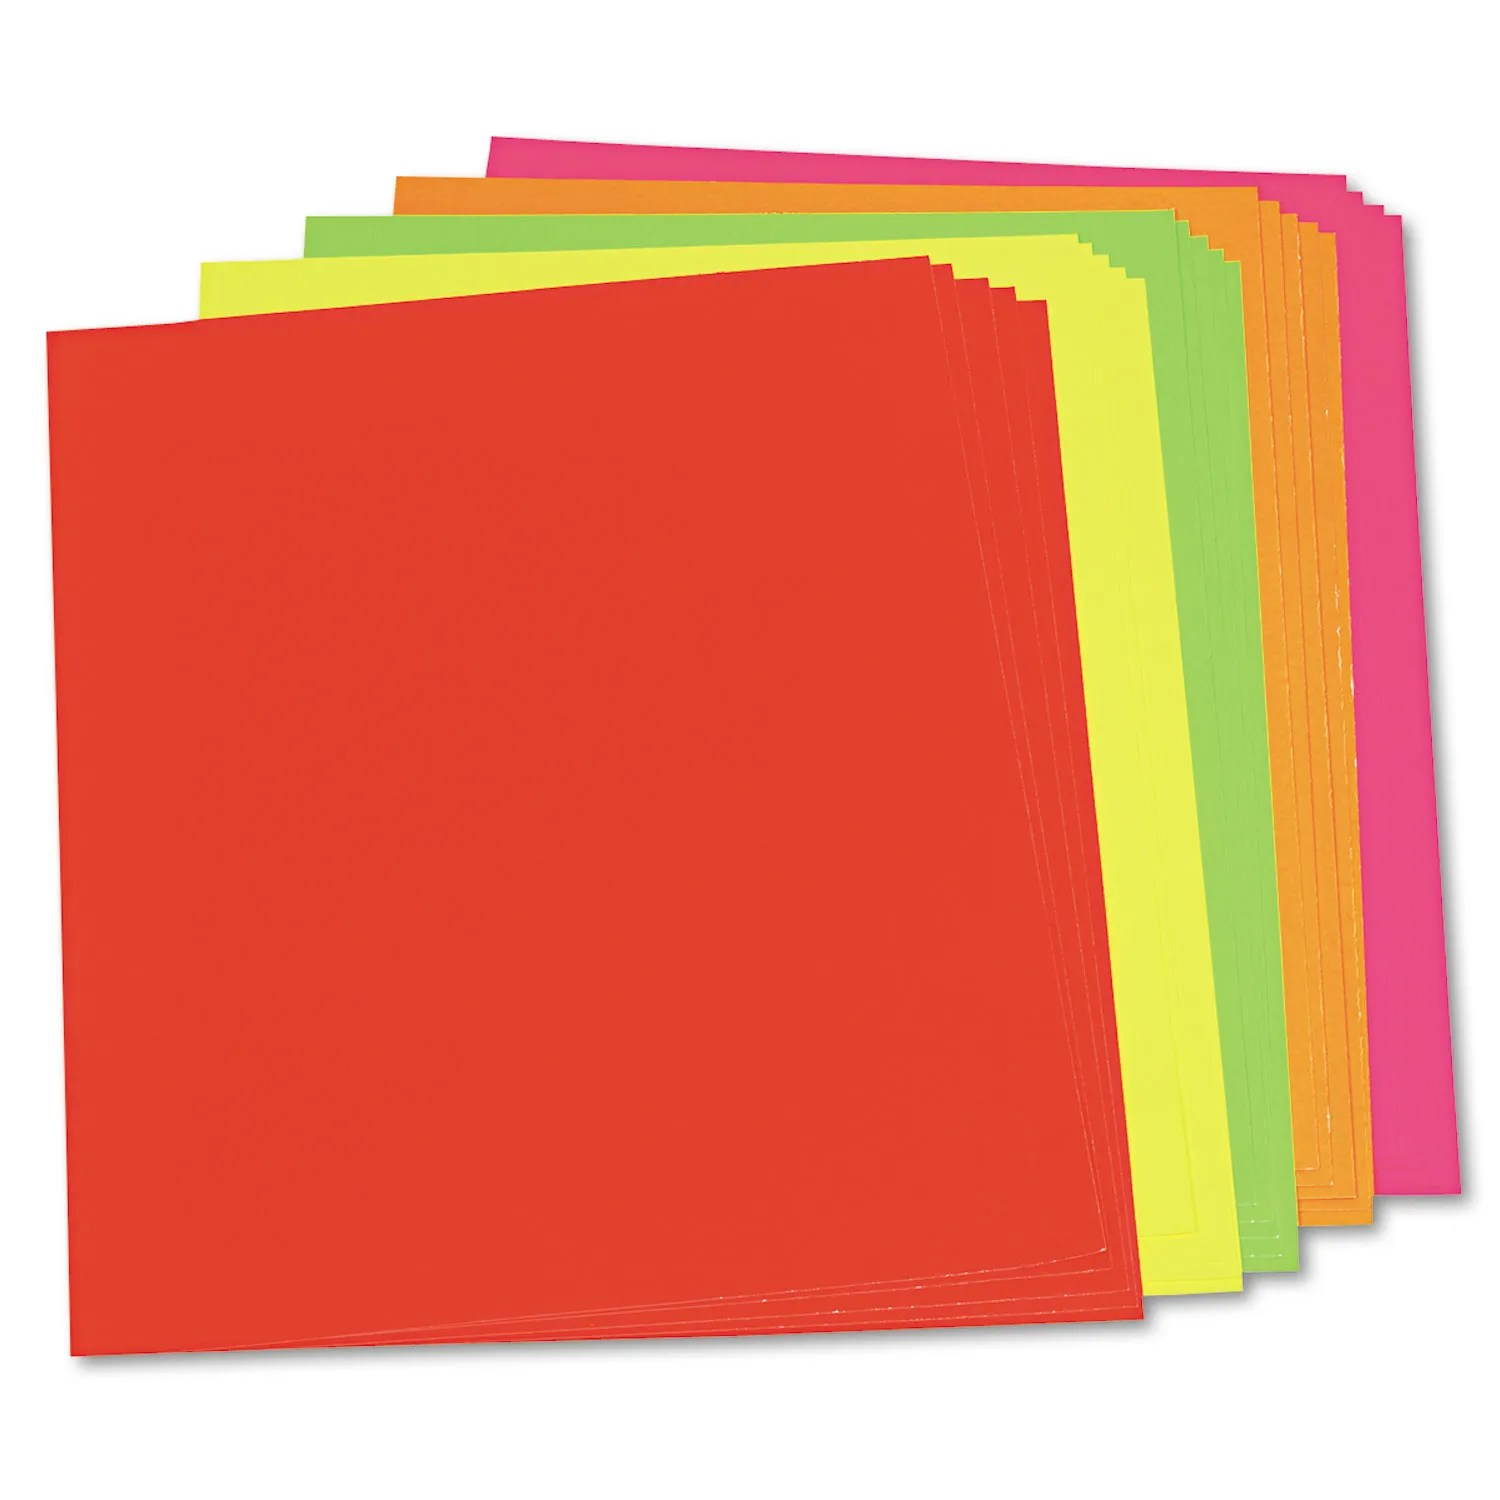 neon color poster board 28 x 22 green orange pink red yellow 25 carton